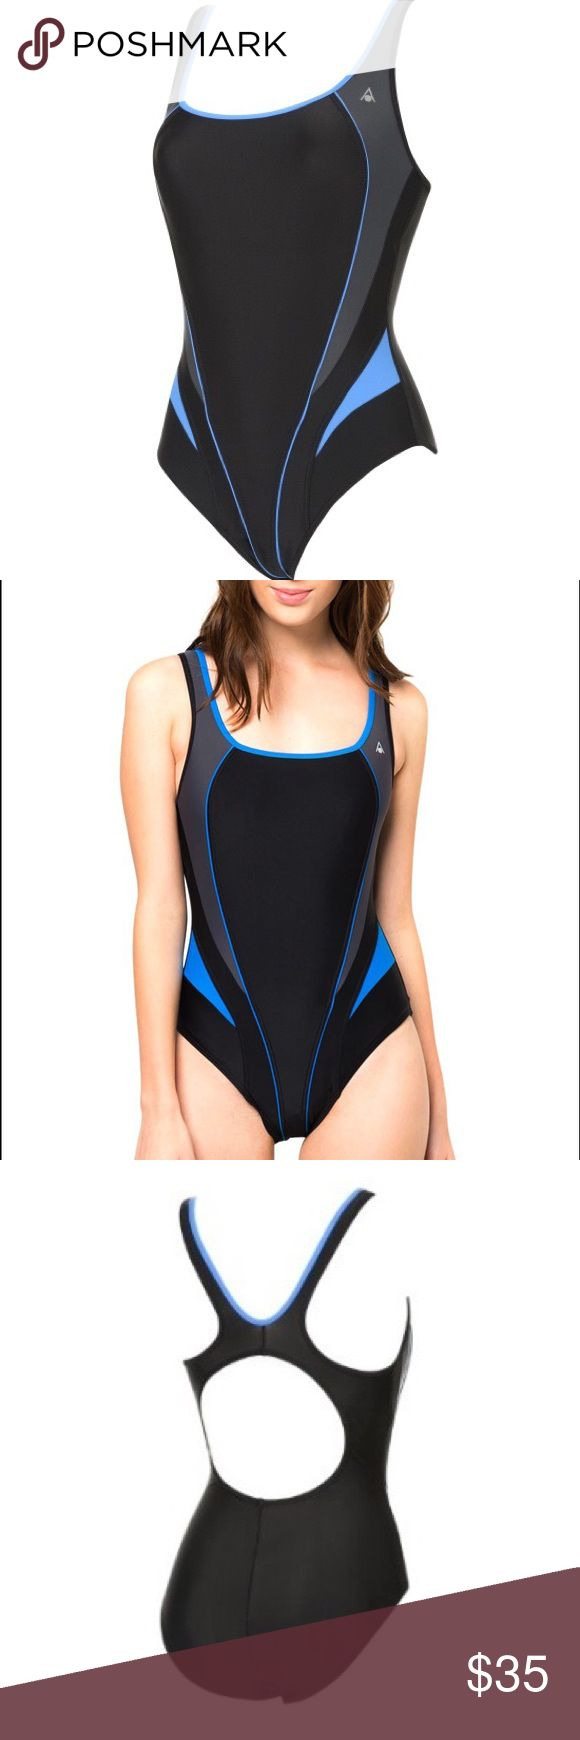 Aqua Sphere Lima Naiad Racerback Swimsuit Brand New With Tags! Aqua Sphere Ladies/Womens Lima Naiad Swimming Costume / Swimsuit Sleek and sexy, this one-piece swimsuit features a racerback and high sides for a flattering fit and streamlined look. Great for training or days at the beach. Chlorine Resistant. Super Stretch. High UV Protection. Size 34inch (10 UK)/Sz 8 US. All reasonable offers considered. Please be sure to check out my other auctions, I have a number of other items up for sale…